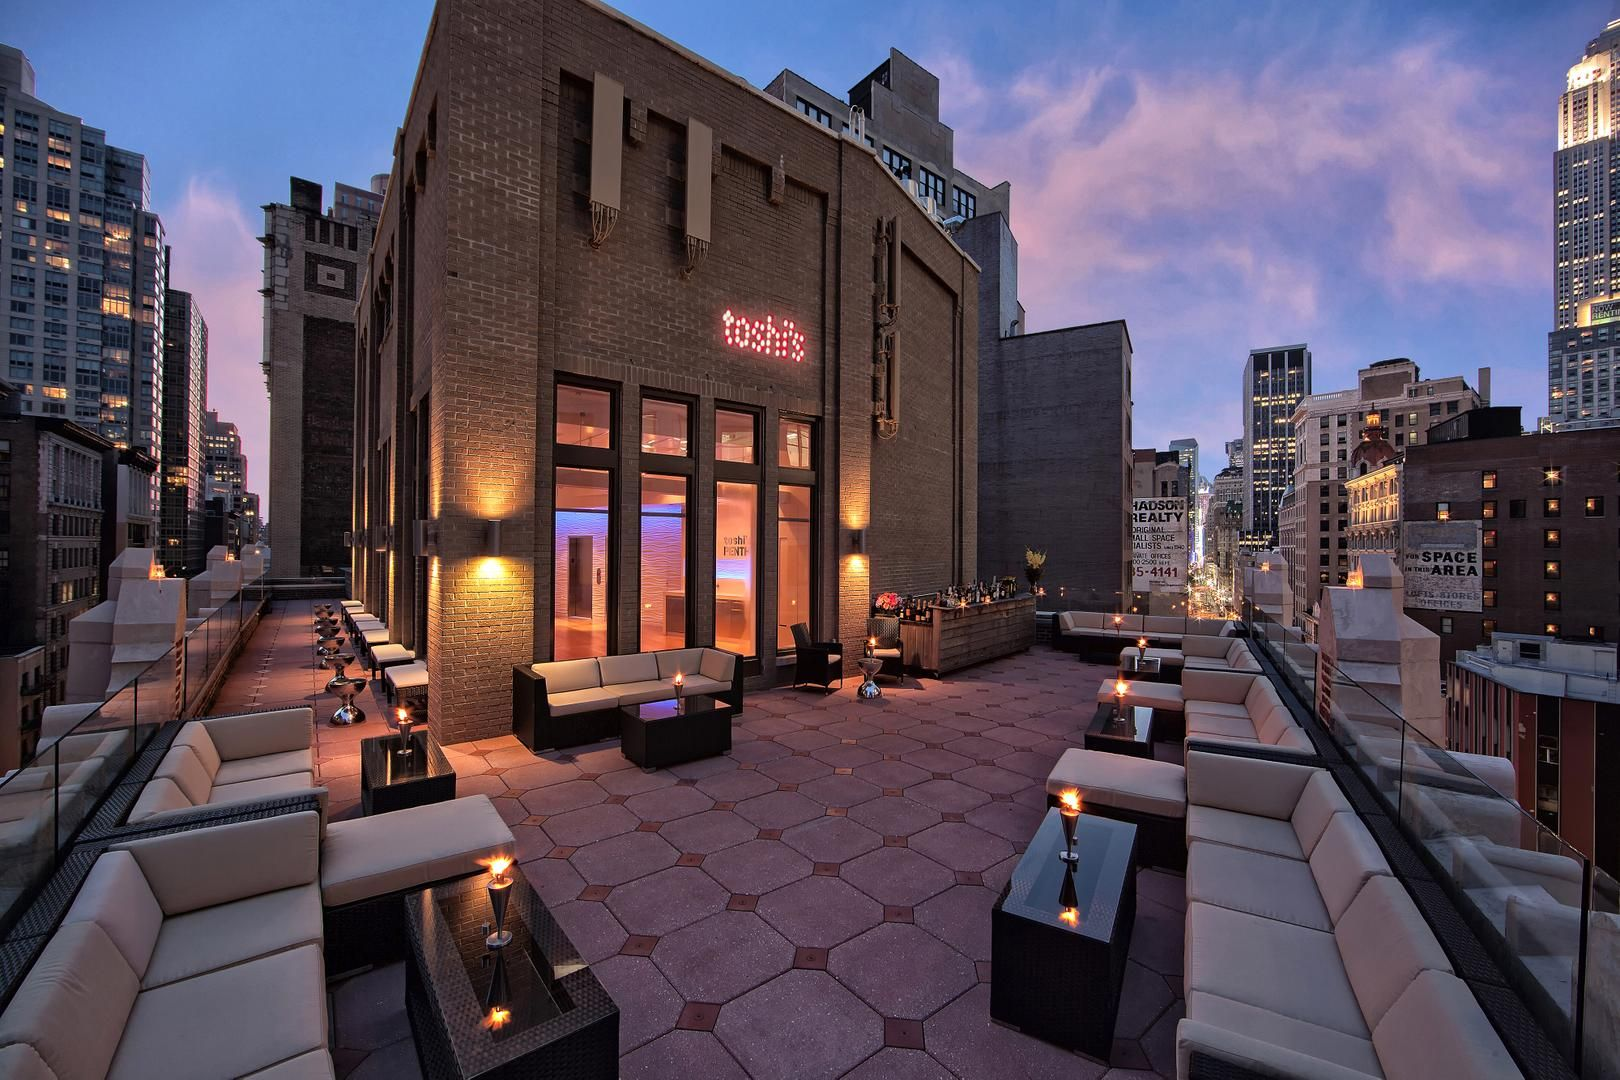 Toshi S Penthouse Eventup Event Venues York Hotels Rooftop